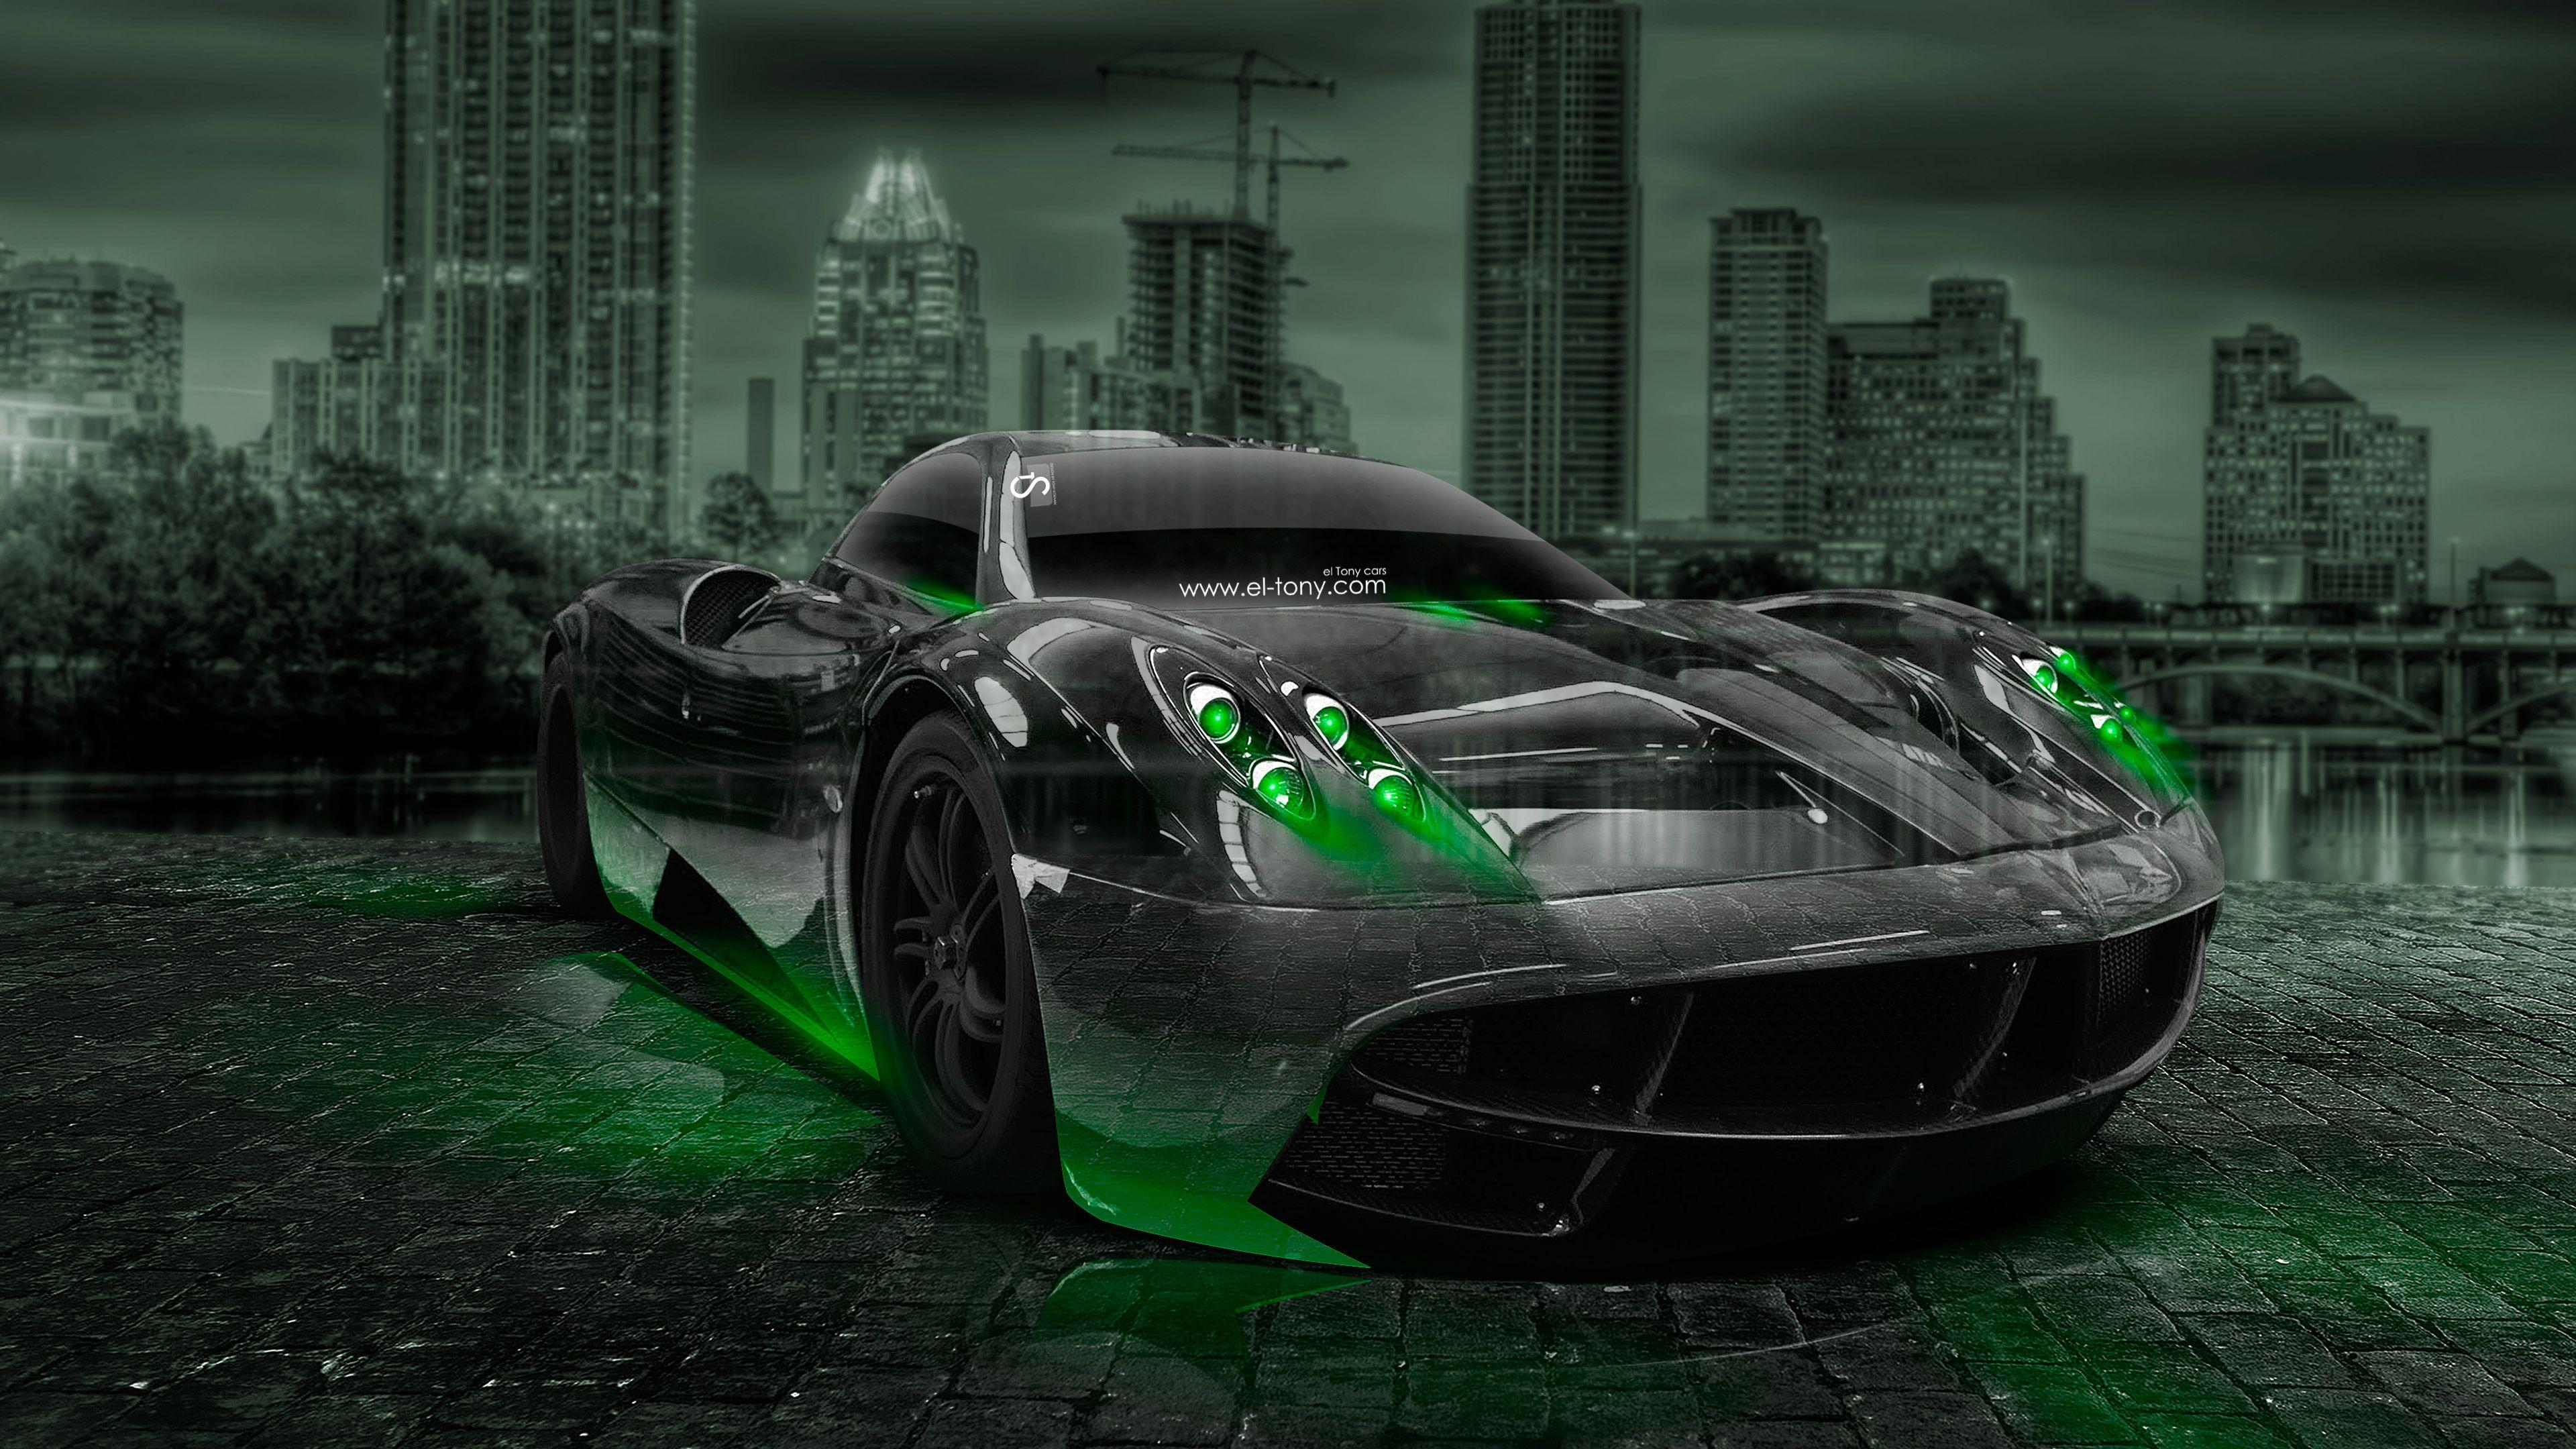 Pagani Huayra Crystal City Car 2015 Wallpapers El Tony Cars « Ino .